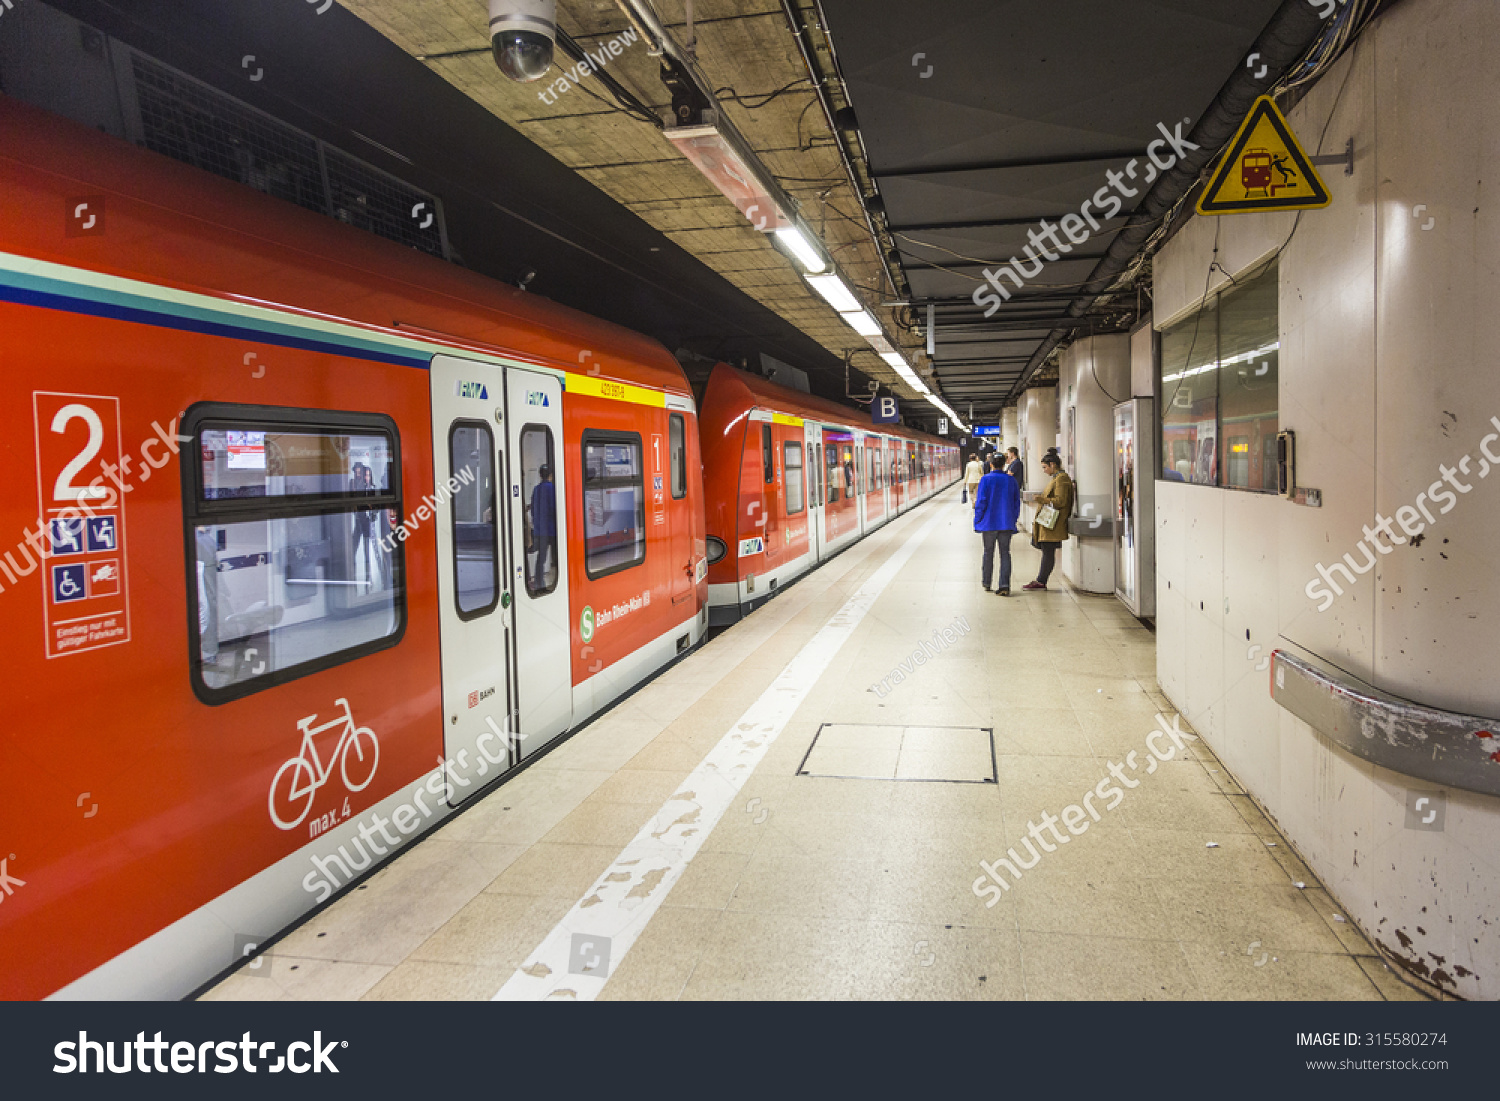 frankfurt germany sep 11 2015 subway train ready to leave the station in frankfurt with. Black Bedroom Furniture Sets. Home Design Ideas